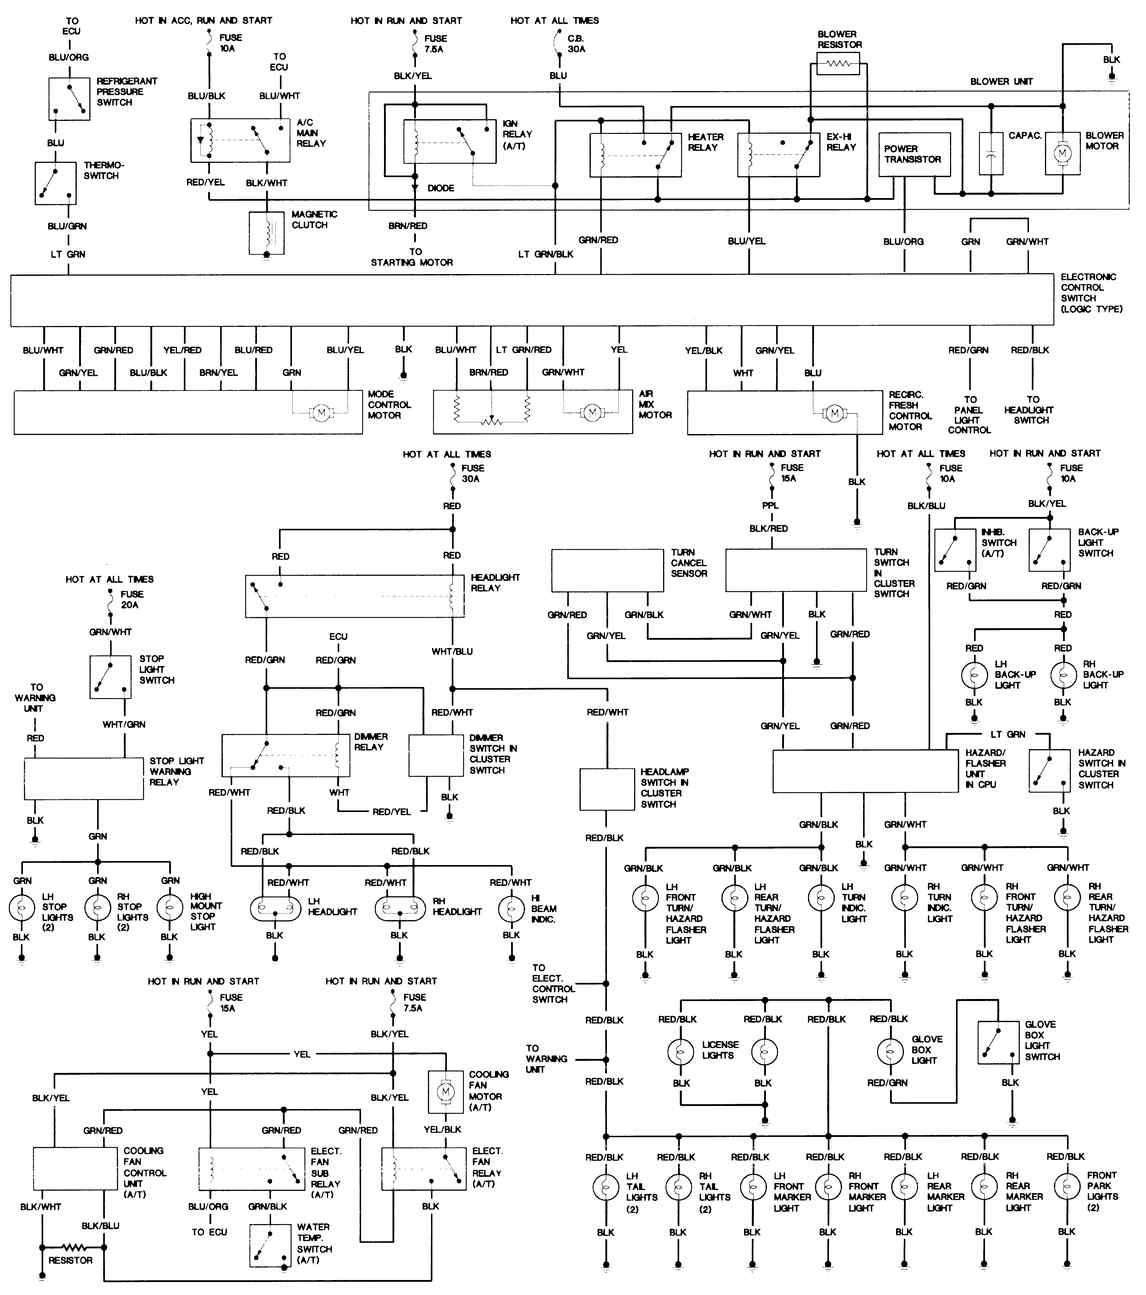 Engine Diagram 1990 Mazda 323 Quick Start Guide Of Wiring 1992 Protege Gtx Data Rh 20 8 Reisen Fuer Meister De 1999 Miata